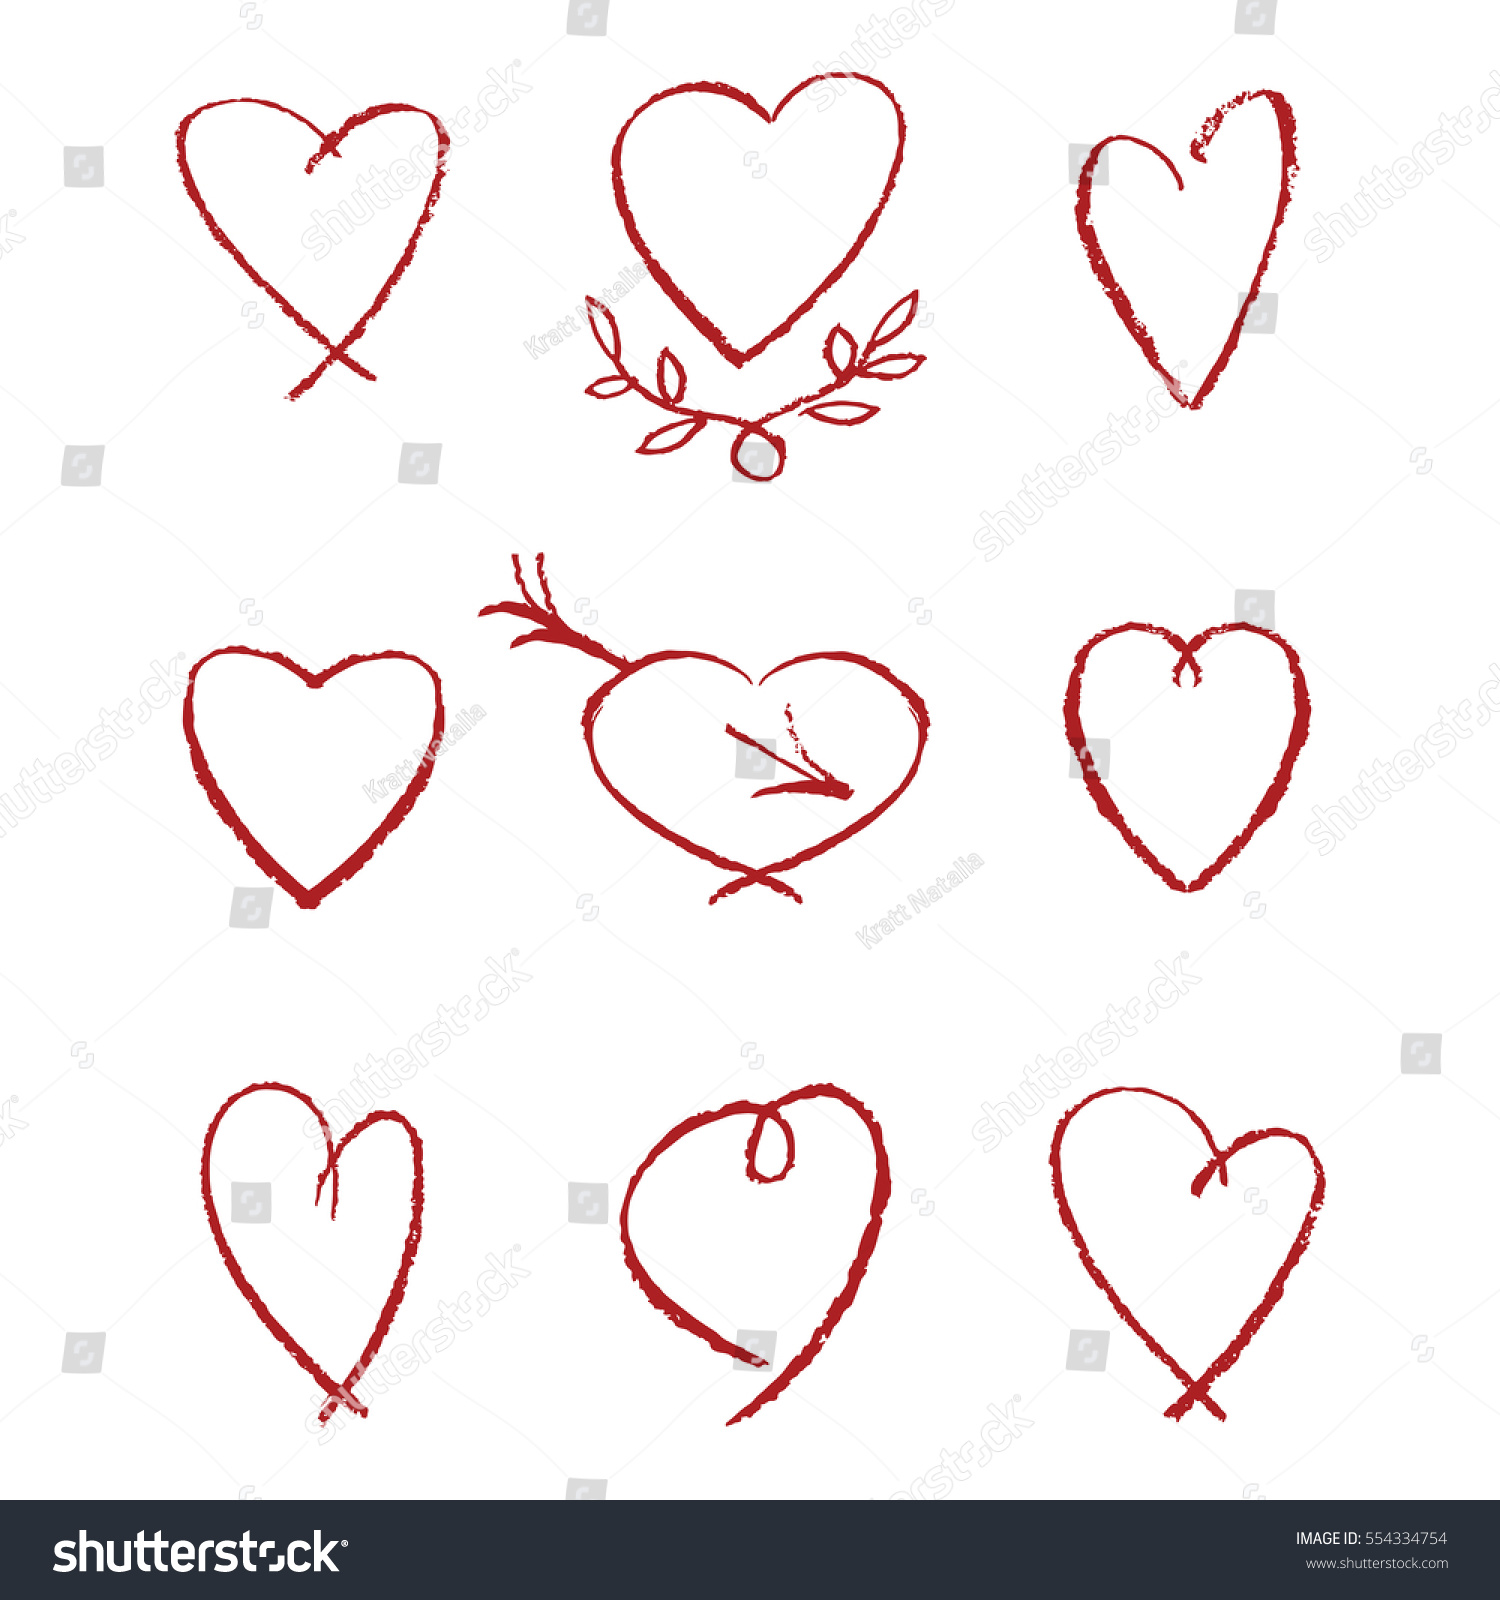 Collection Hand Drawn Hearts Made Pastel Stock Vector 2018